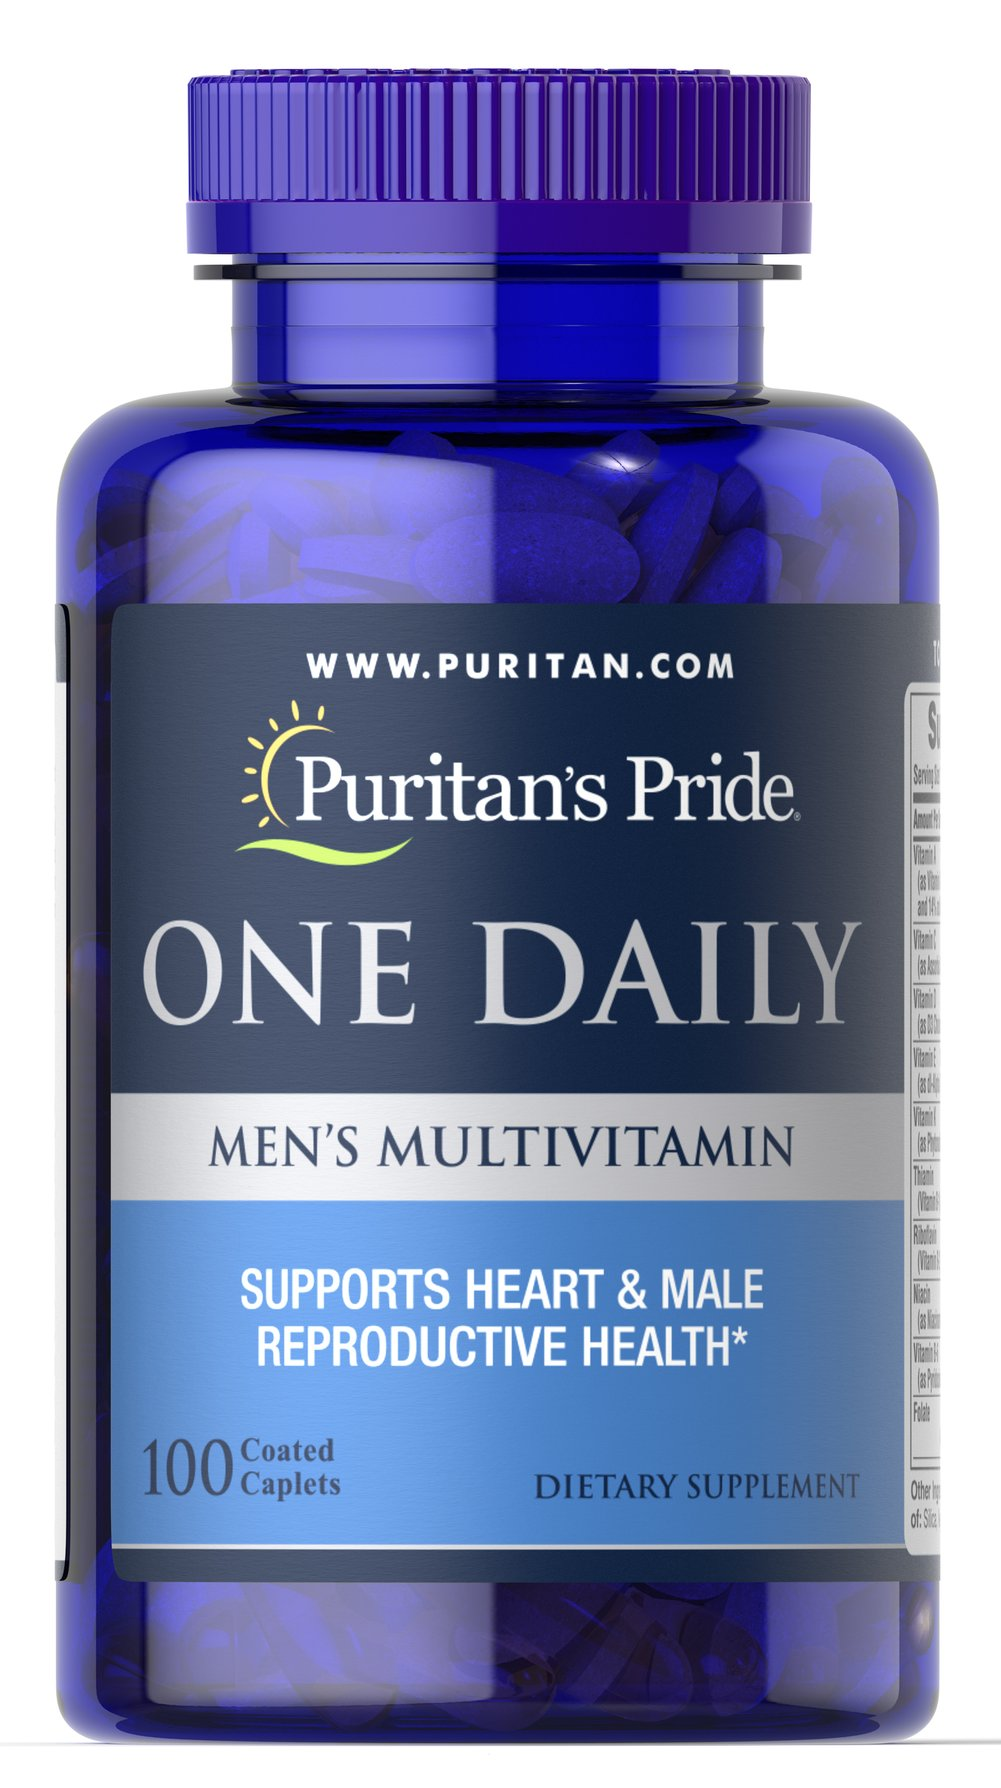 One Daily Men's Multivitamin <p>A Convenient multivitamins for the Man on the Go! Compare and Save!</p><p>Once-daily formula provides an array of vitamins and minerals</p><p>Includes 700 IU of Vitamin D to support bone and immune system health, and 100% of the Daily Value of Zinc to aid with energy metabolism and male reproductive health**</p><p>Provides 300 mcg of Lycopene, a major carotenoid found in healthy prostate glands</p> 100 Caplets  $